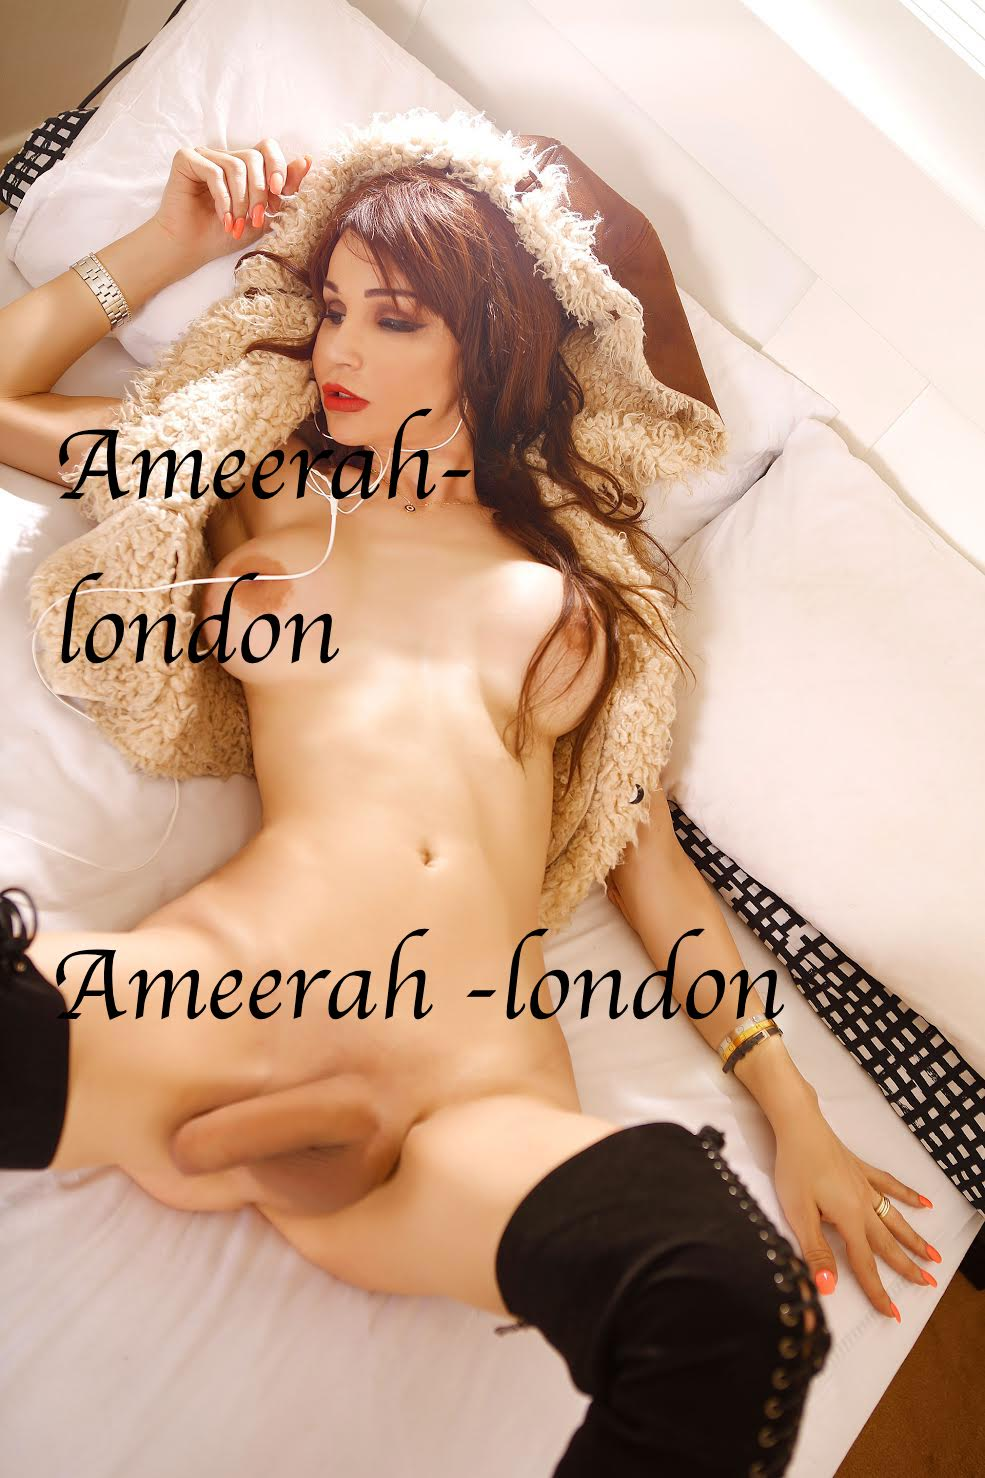 Arab escorts london